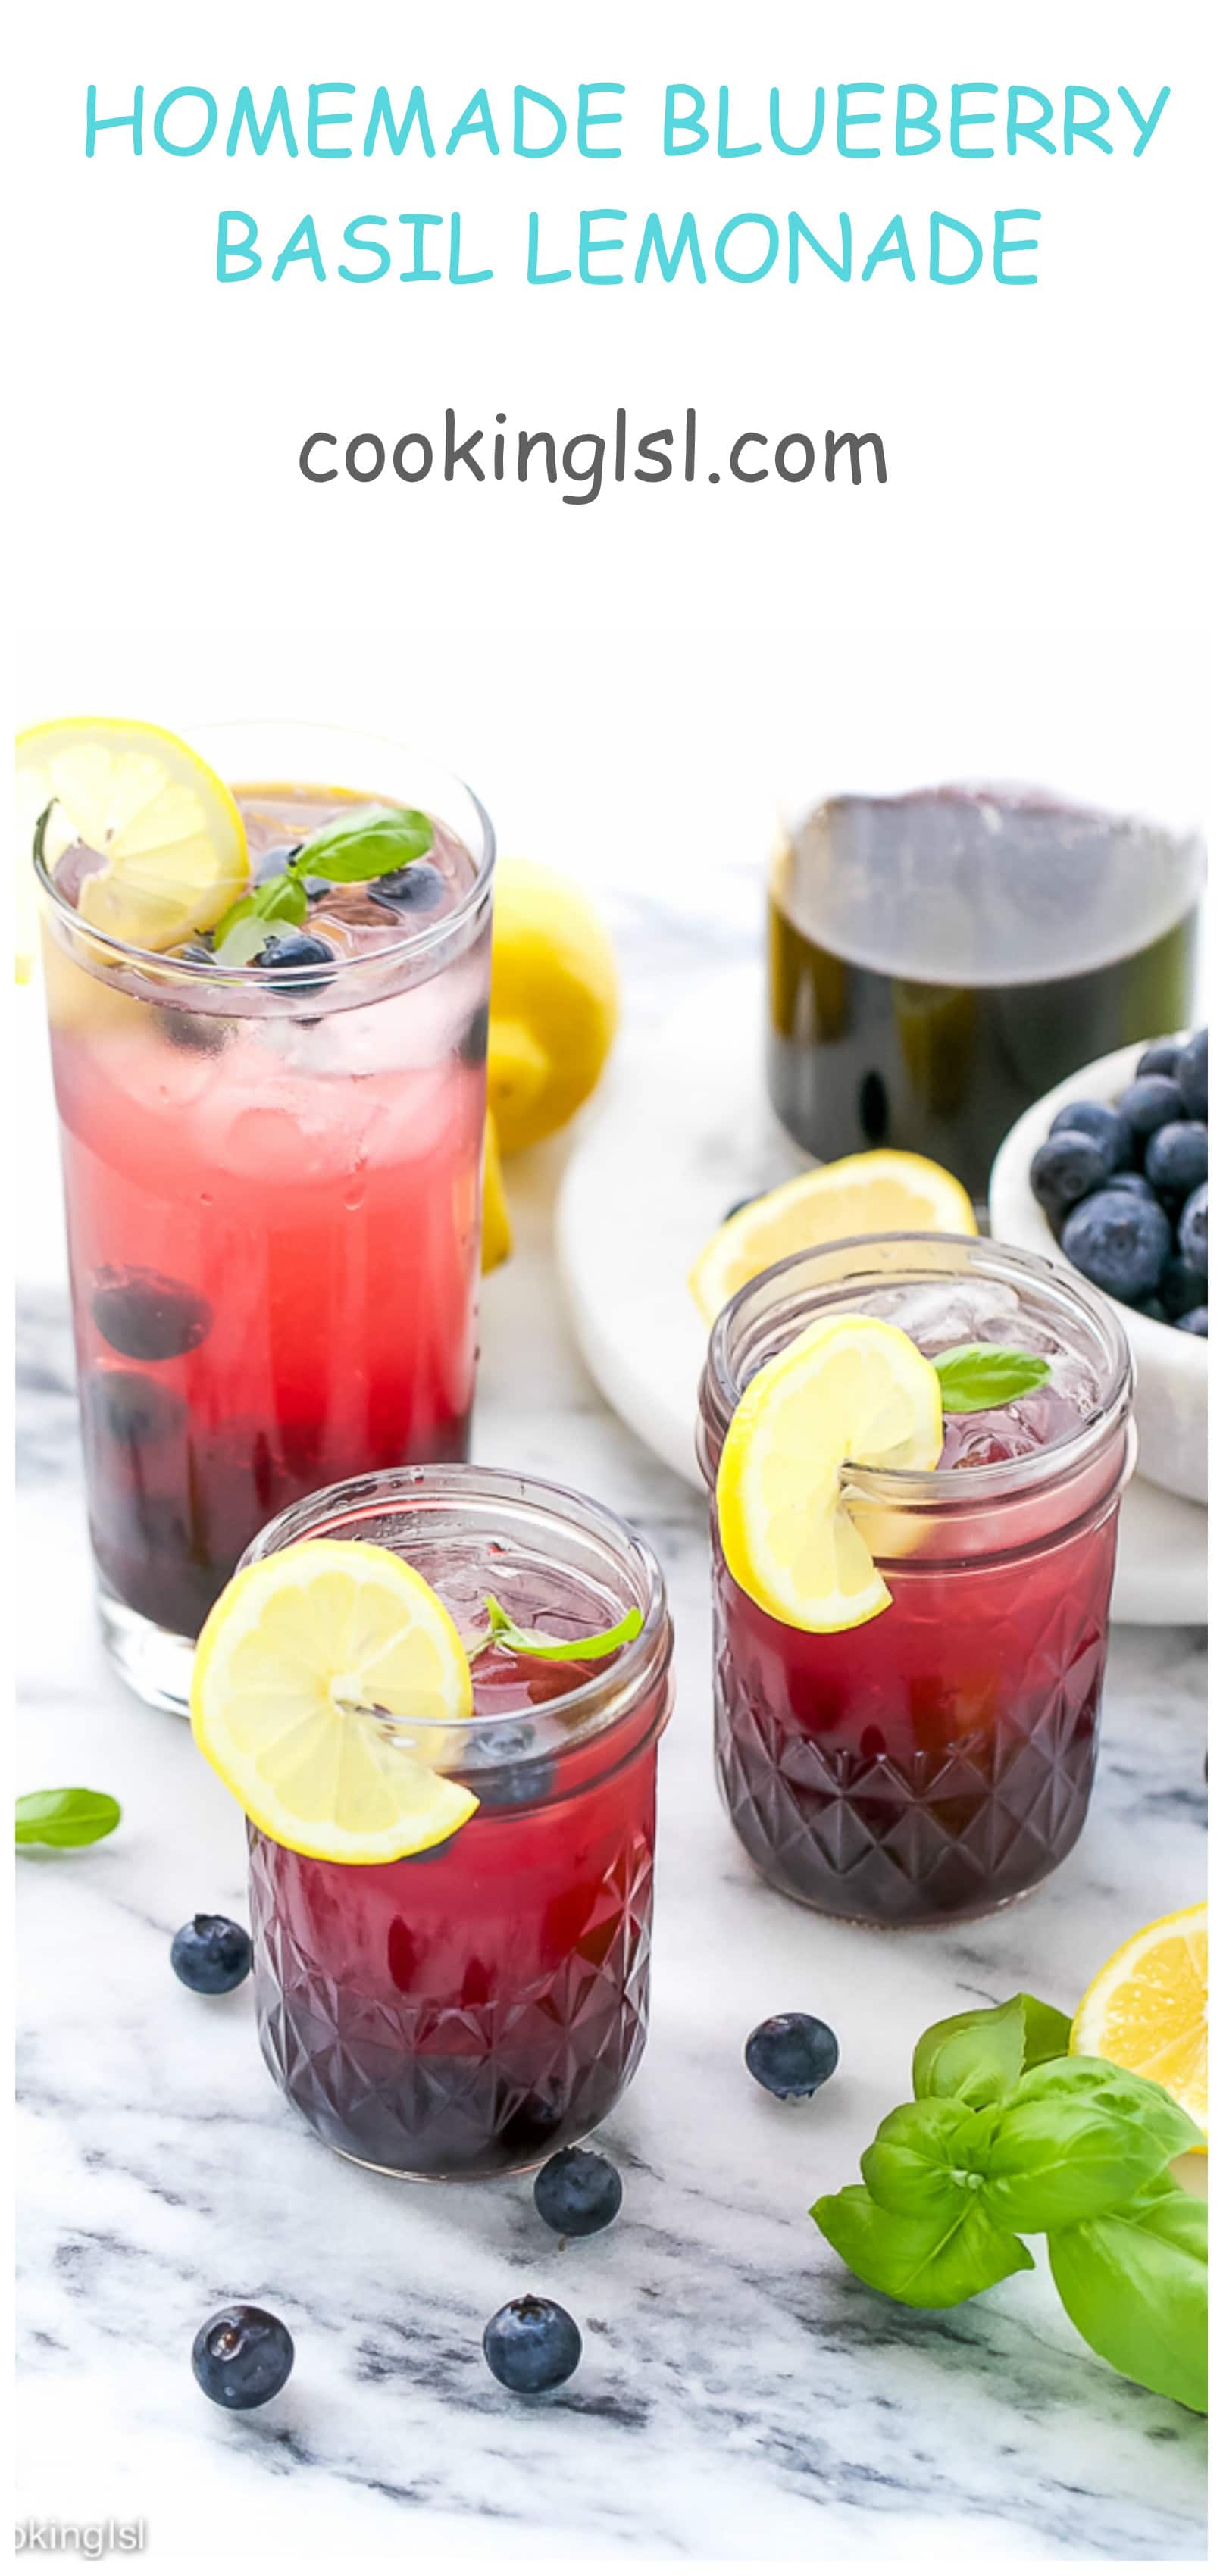 HOMEMADE-BLUEBERRY-BASIL-LEMONADE